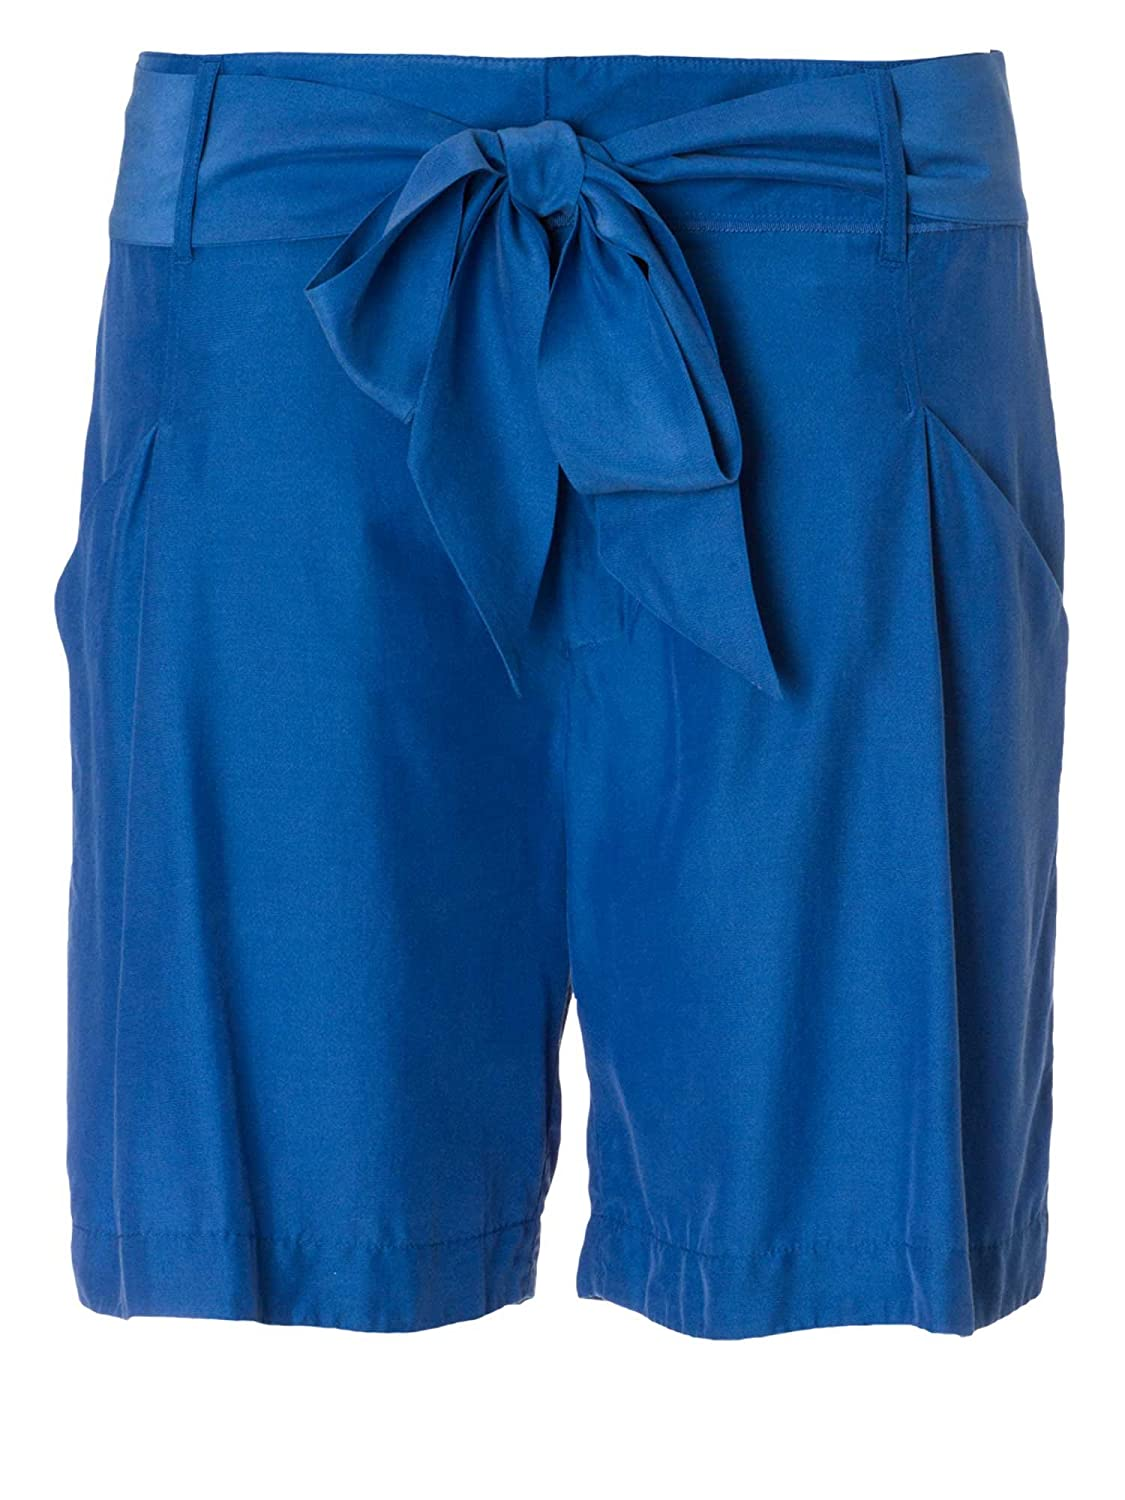 BOSS ORANGE Shorts Damen günstig bestellen